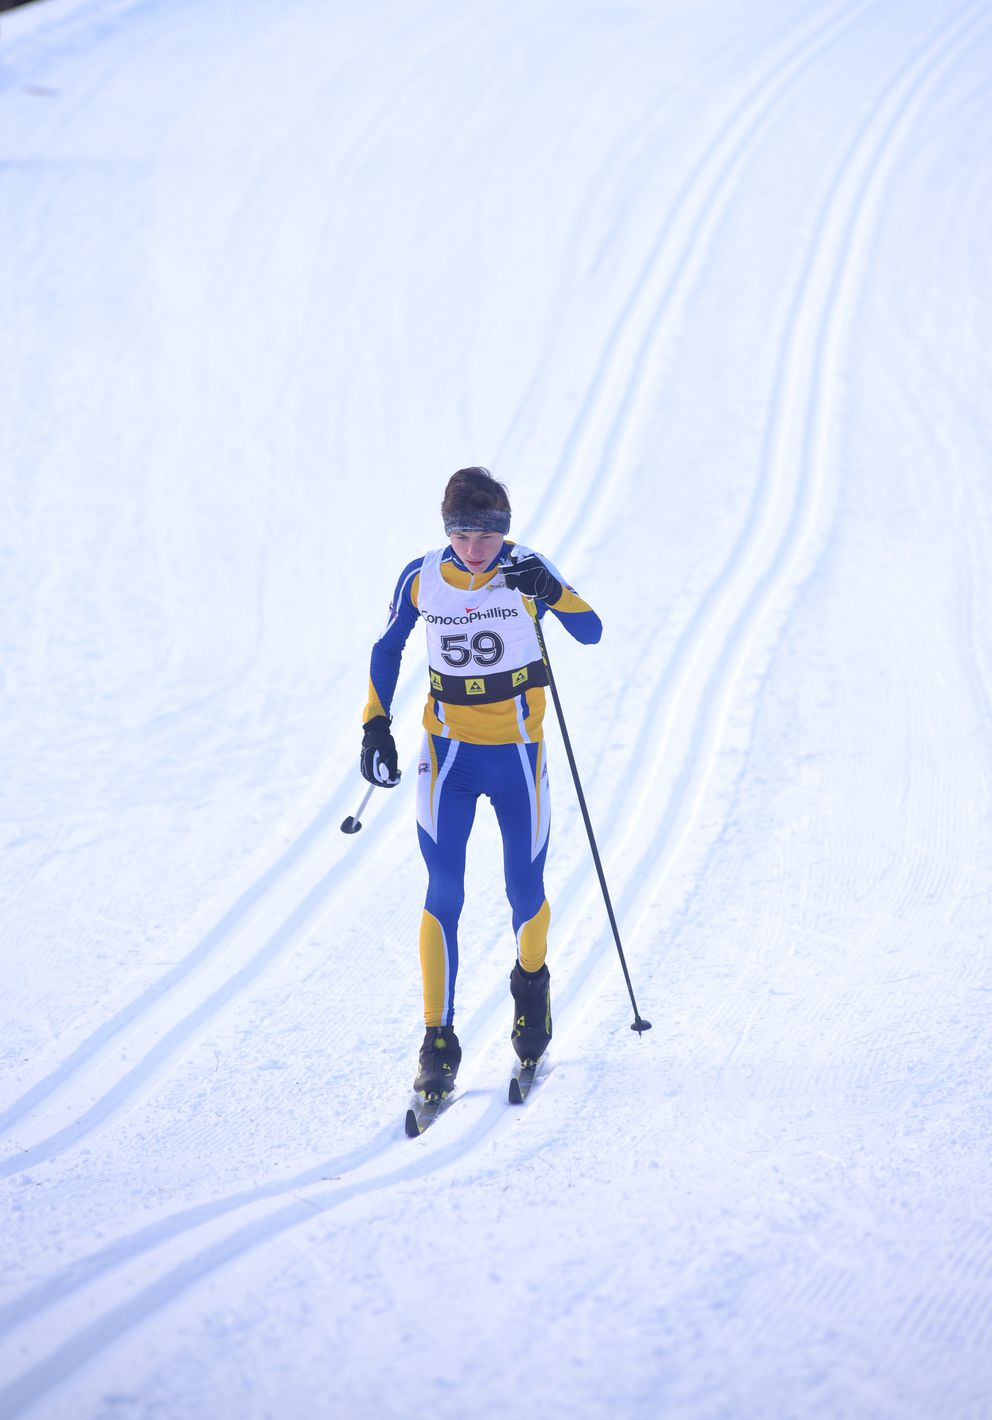 Evan Sosinski competes in the boys 5-kilometer classic race Sunday on the Lookout Mountain ski trails in Homer. (Photo by Eric Engman)